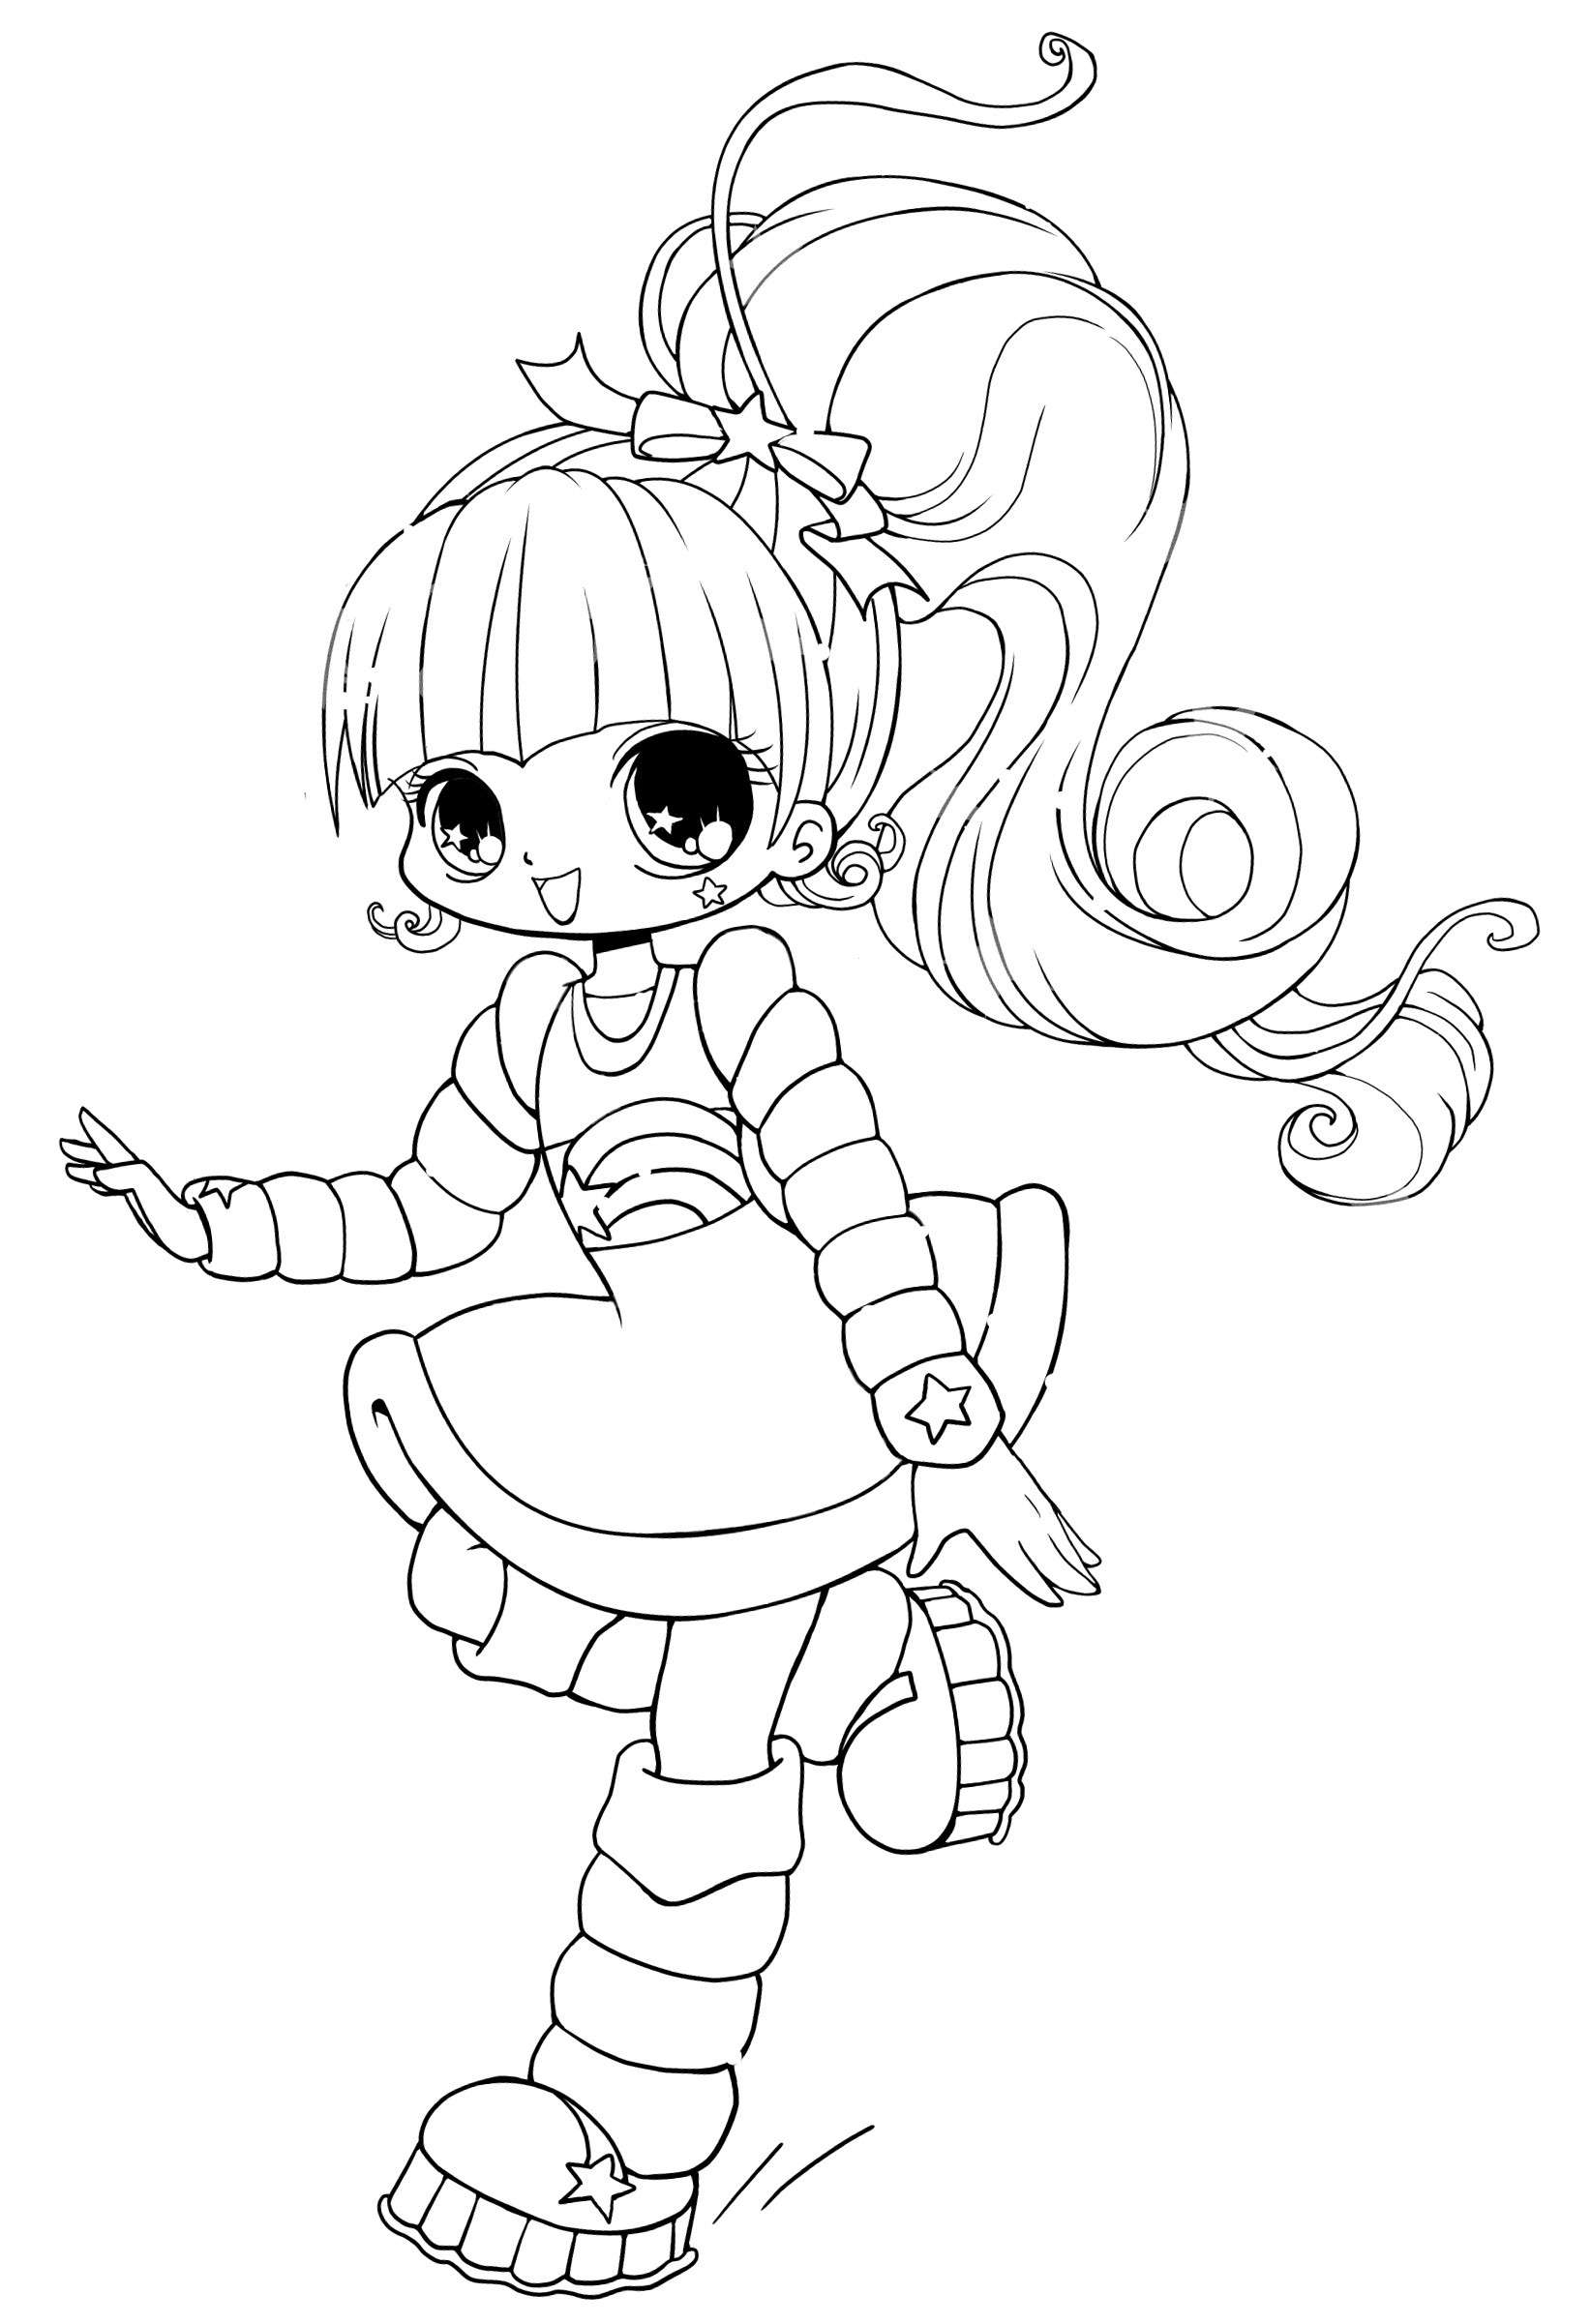 cute anime coloring pages Download-Cute Anime Coloring Pages Cute Anime Chibi Girl Coloring Pages Free 7-n